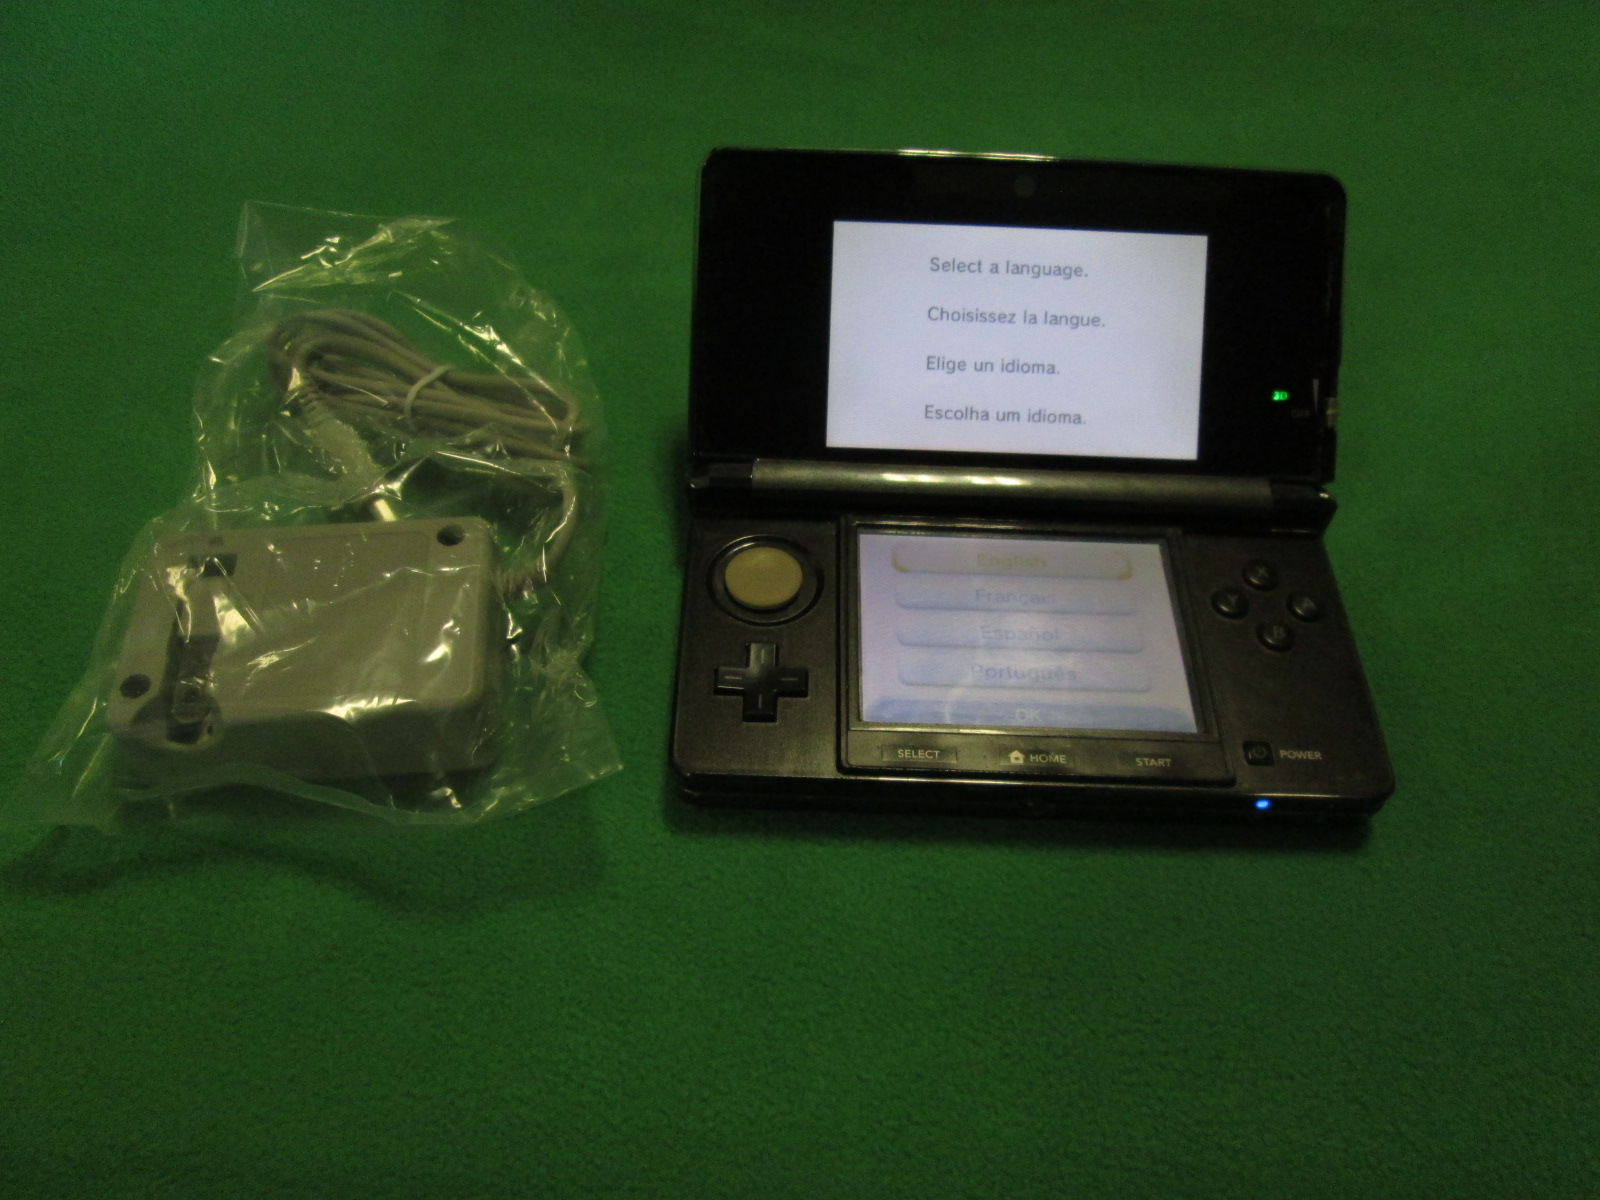 Nintendo 3DS Cosmo Black With Memory Card Console Handheld